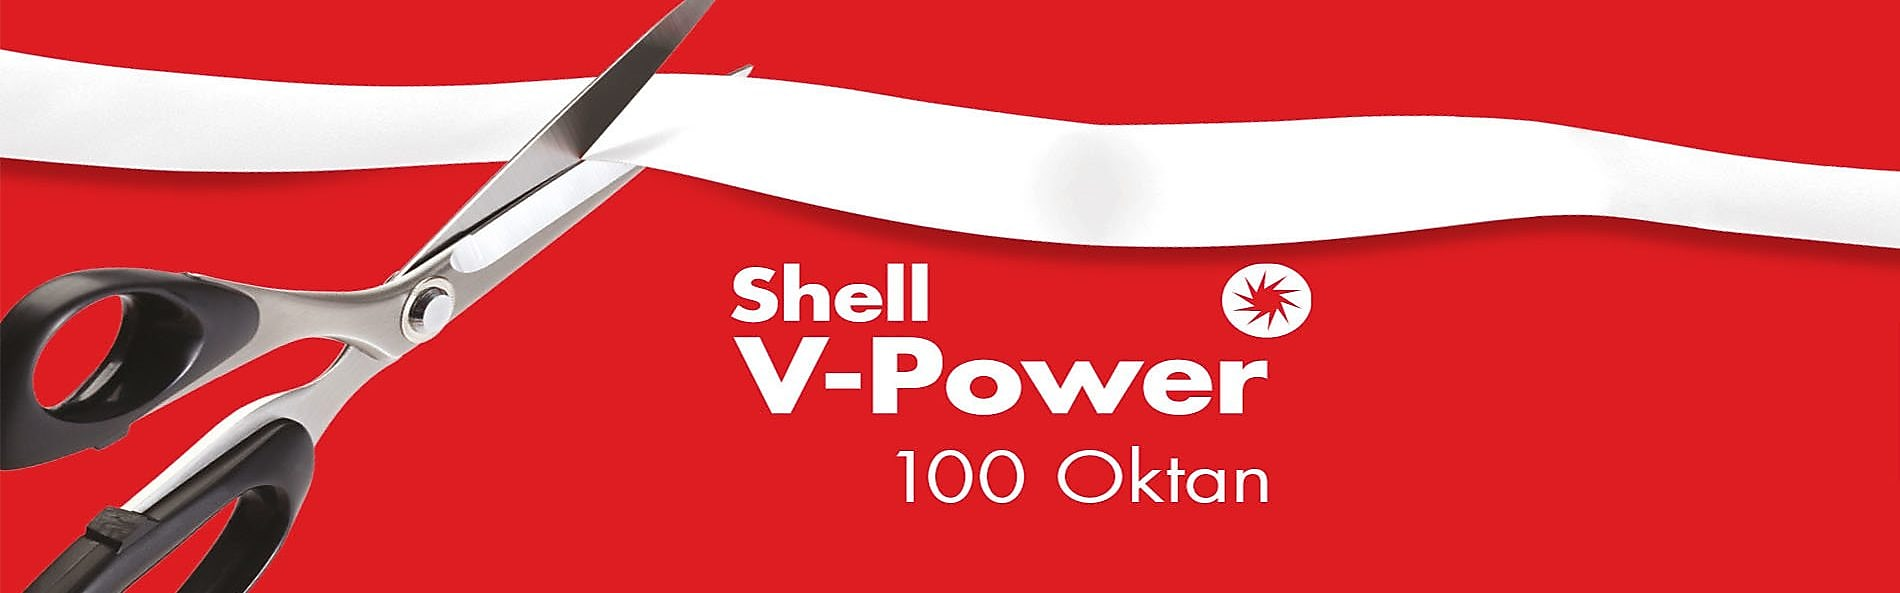 Shell V-Power Oktan 100